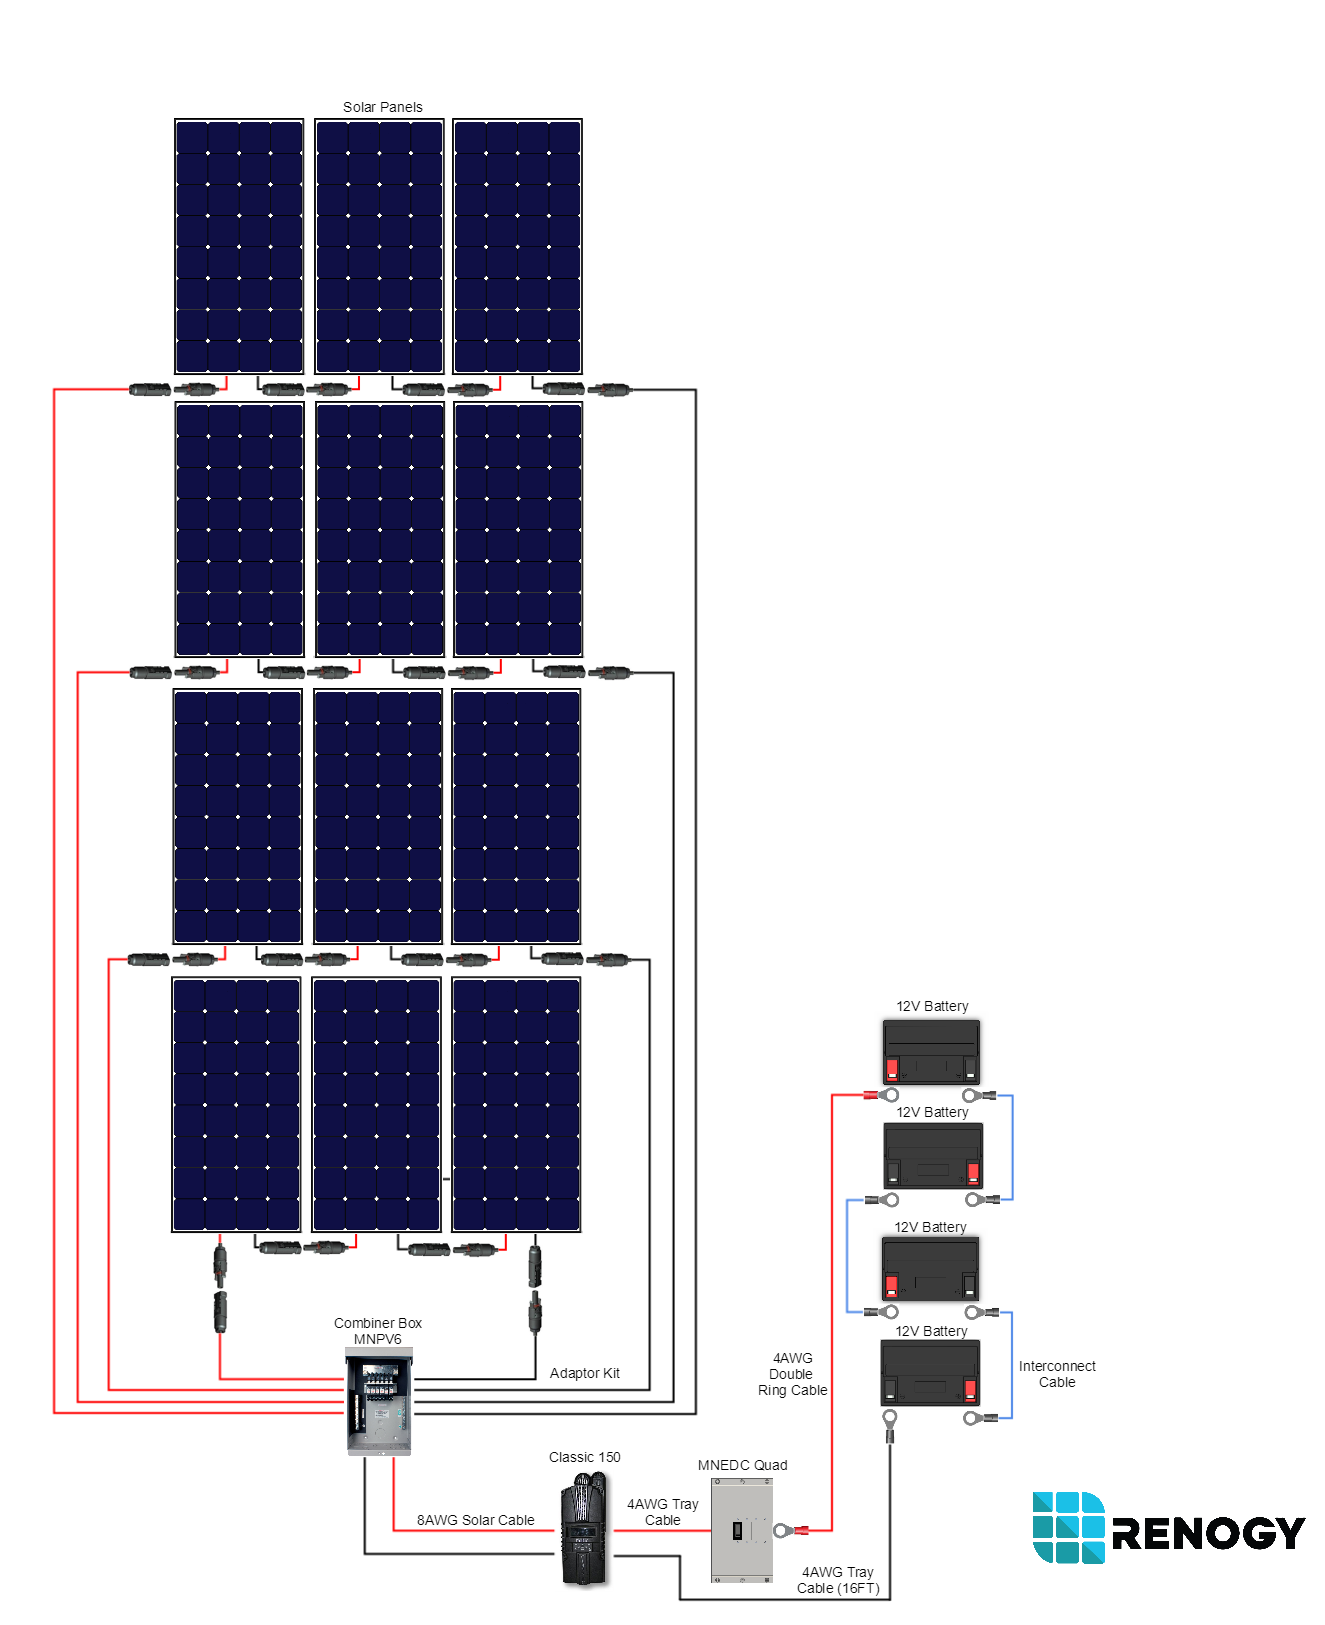 Cabin Solar Power Wiring Diagram Custom 12 Volt Renogy 3600 Watt 48 Monocrystalline Kit Rh Com Battery Diagrams Typical Panel